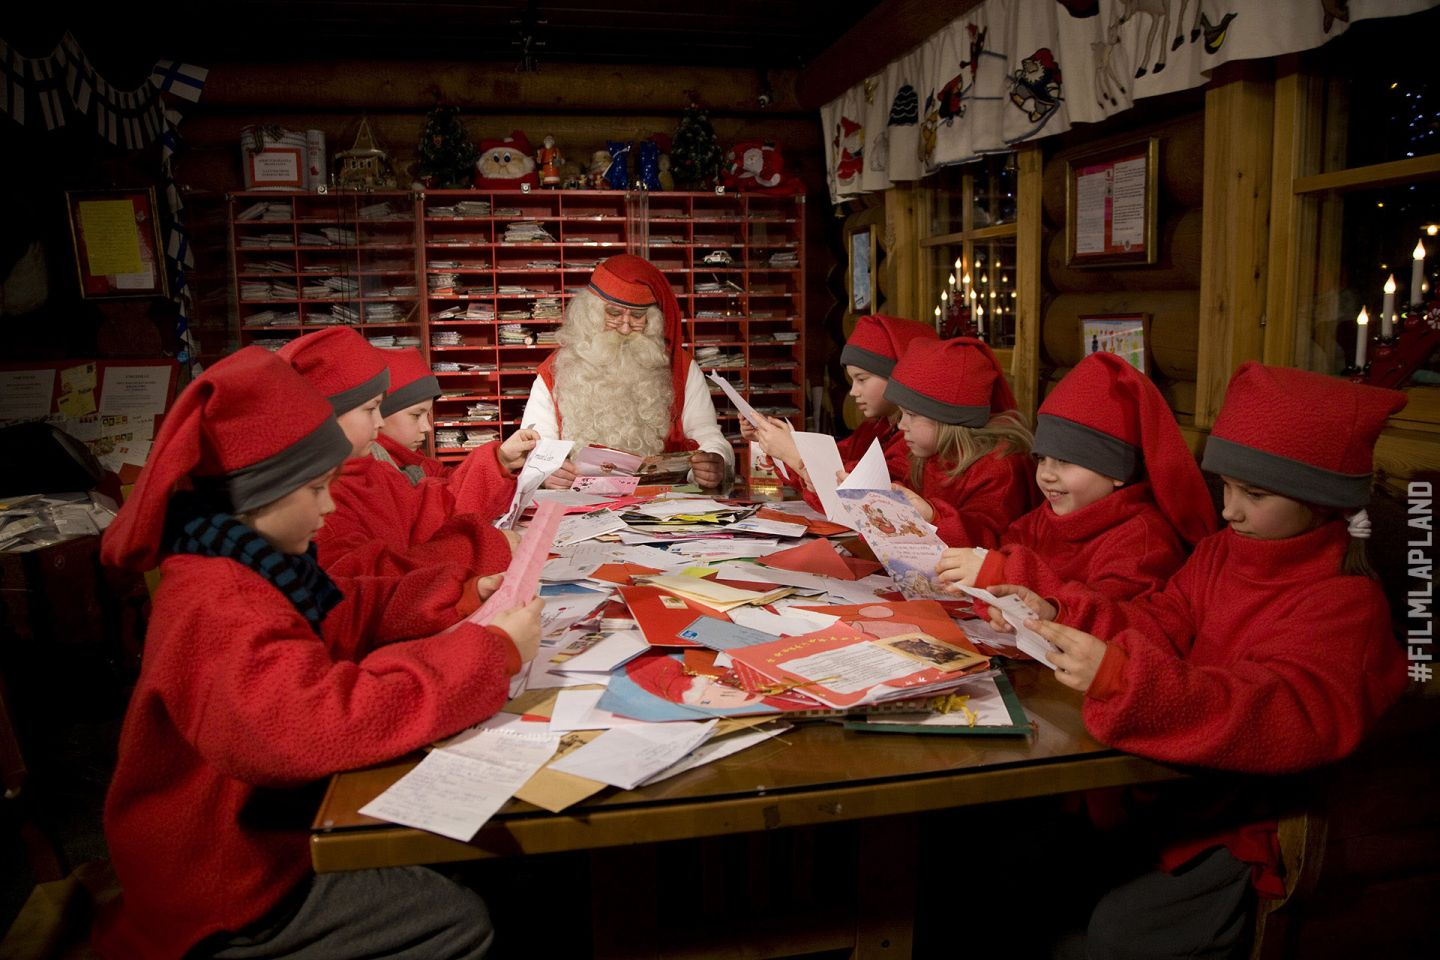 Santa Claus and elves working at the Santa Claus Main Post Office in Rovaniemi, Finland